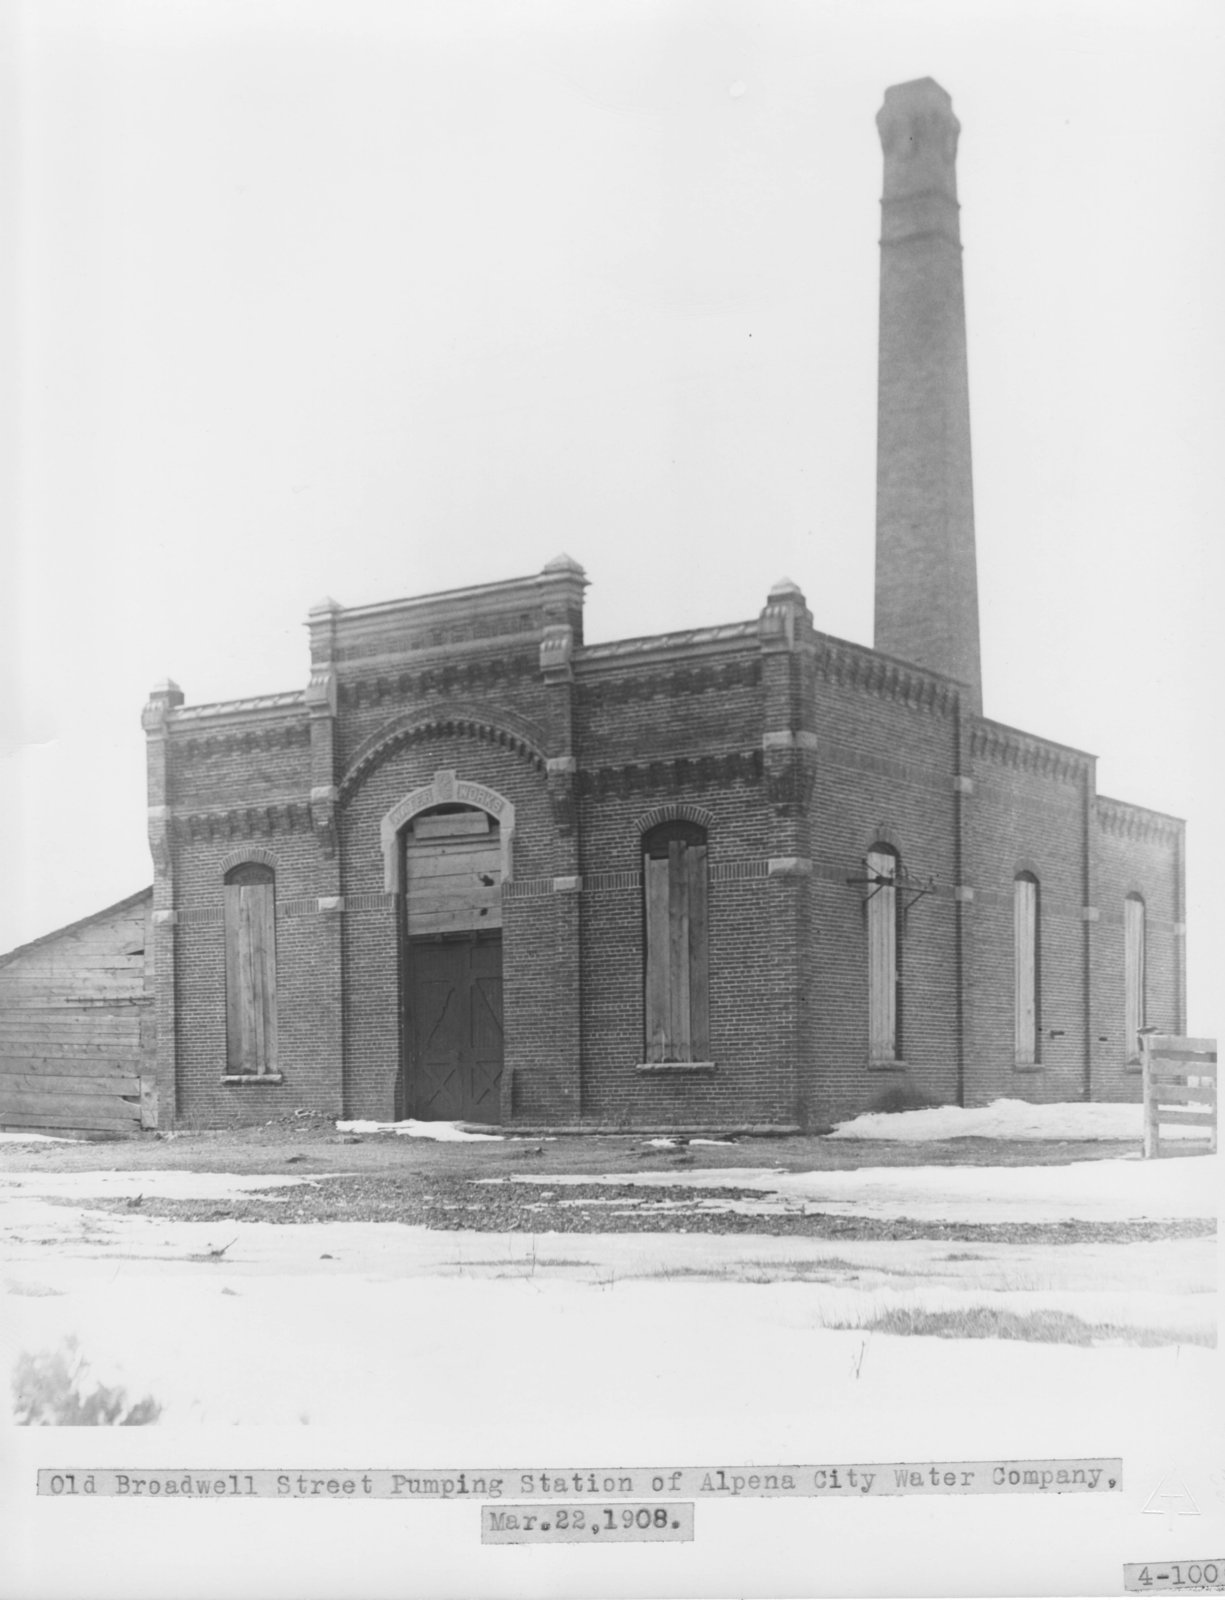 Alpena City Water Pumping Station